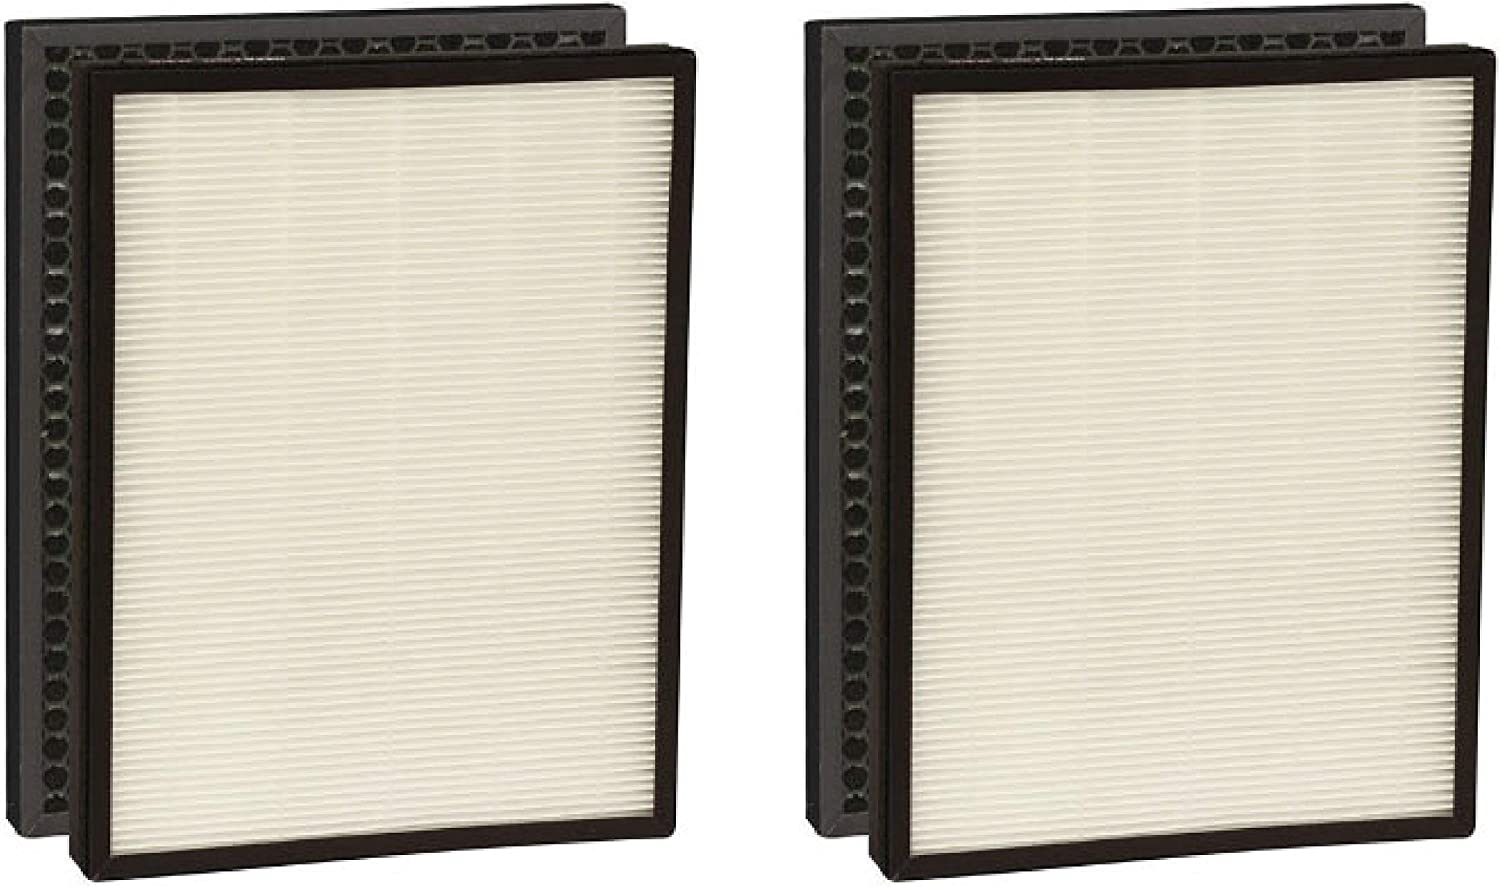 Nispira True HEPA Replacement Filter + Activated Carbon Pre Filter Compatible with Alexapure Breeze Air Purifier 3049, 2 Sets